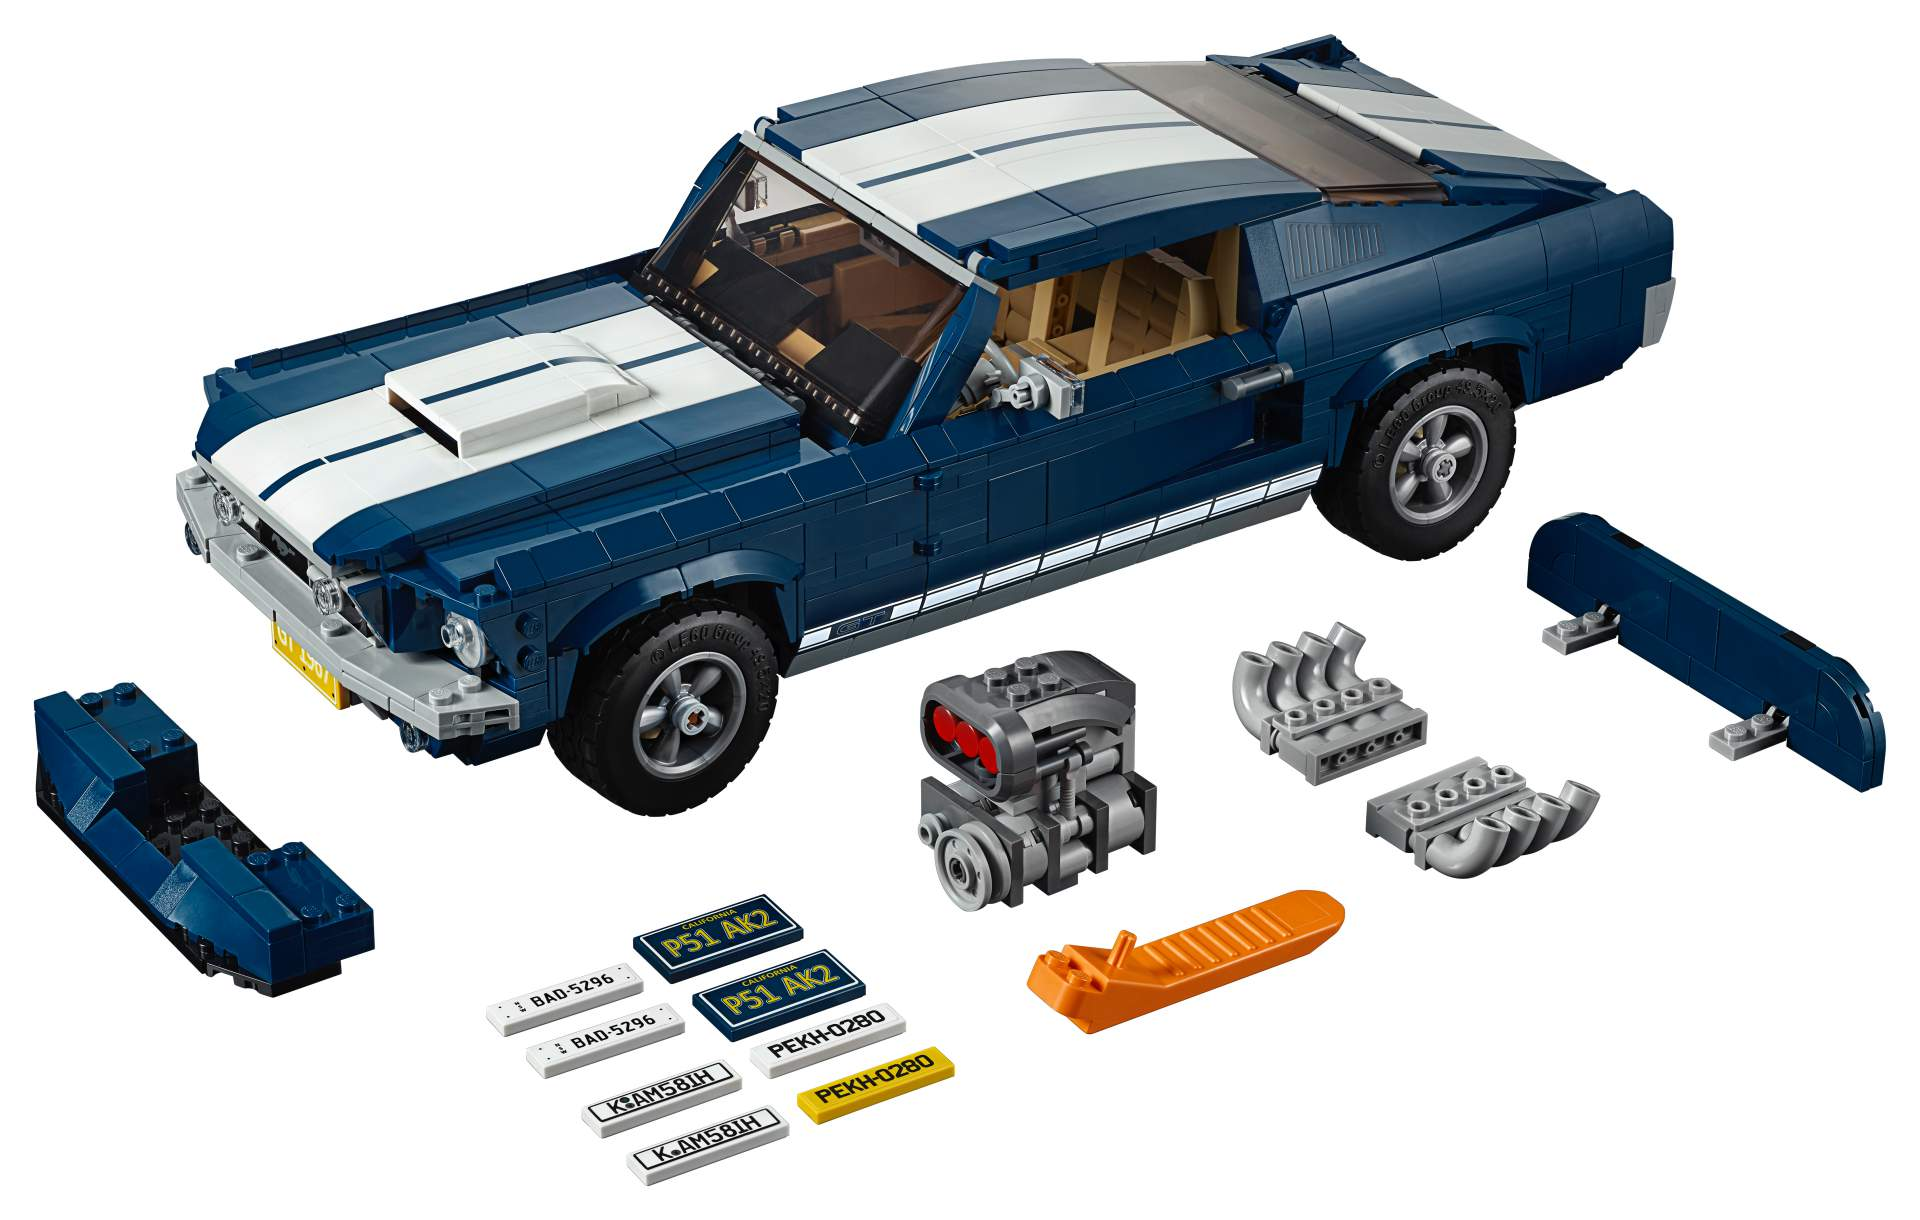 Ford Mustang GT 1967 Lego Creator Set (17)